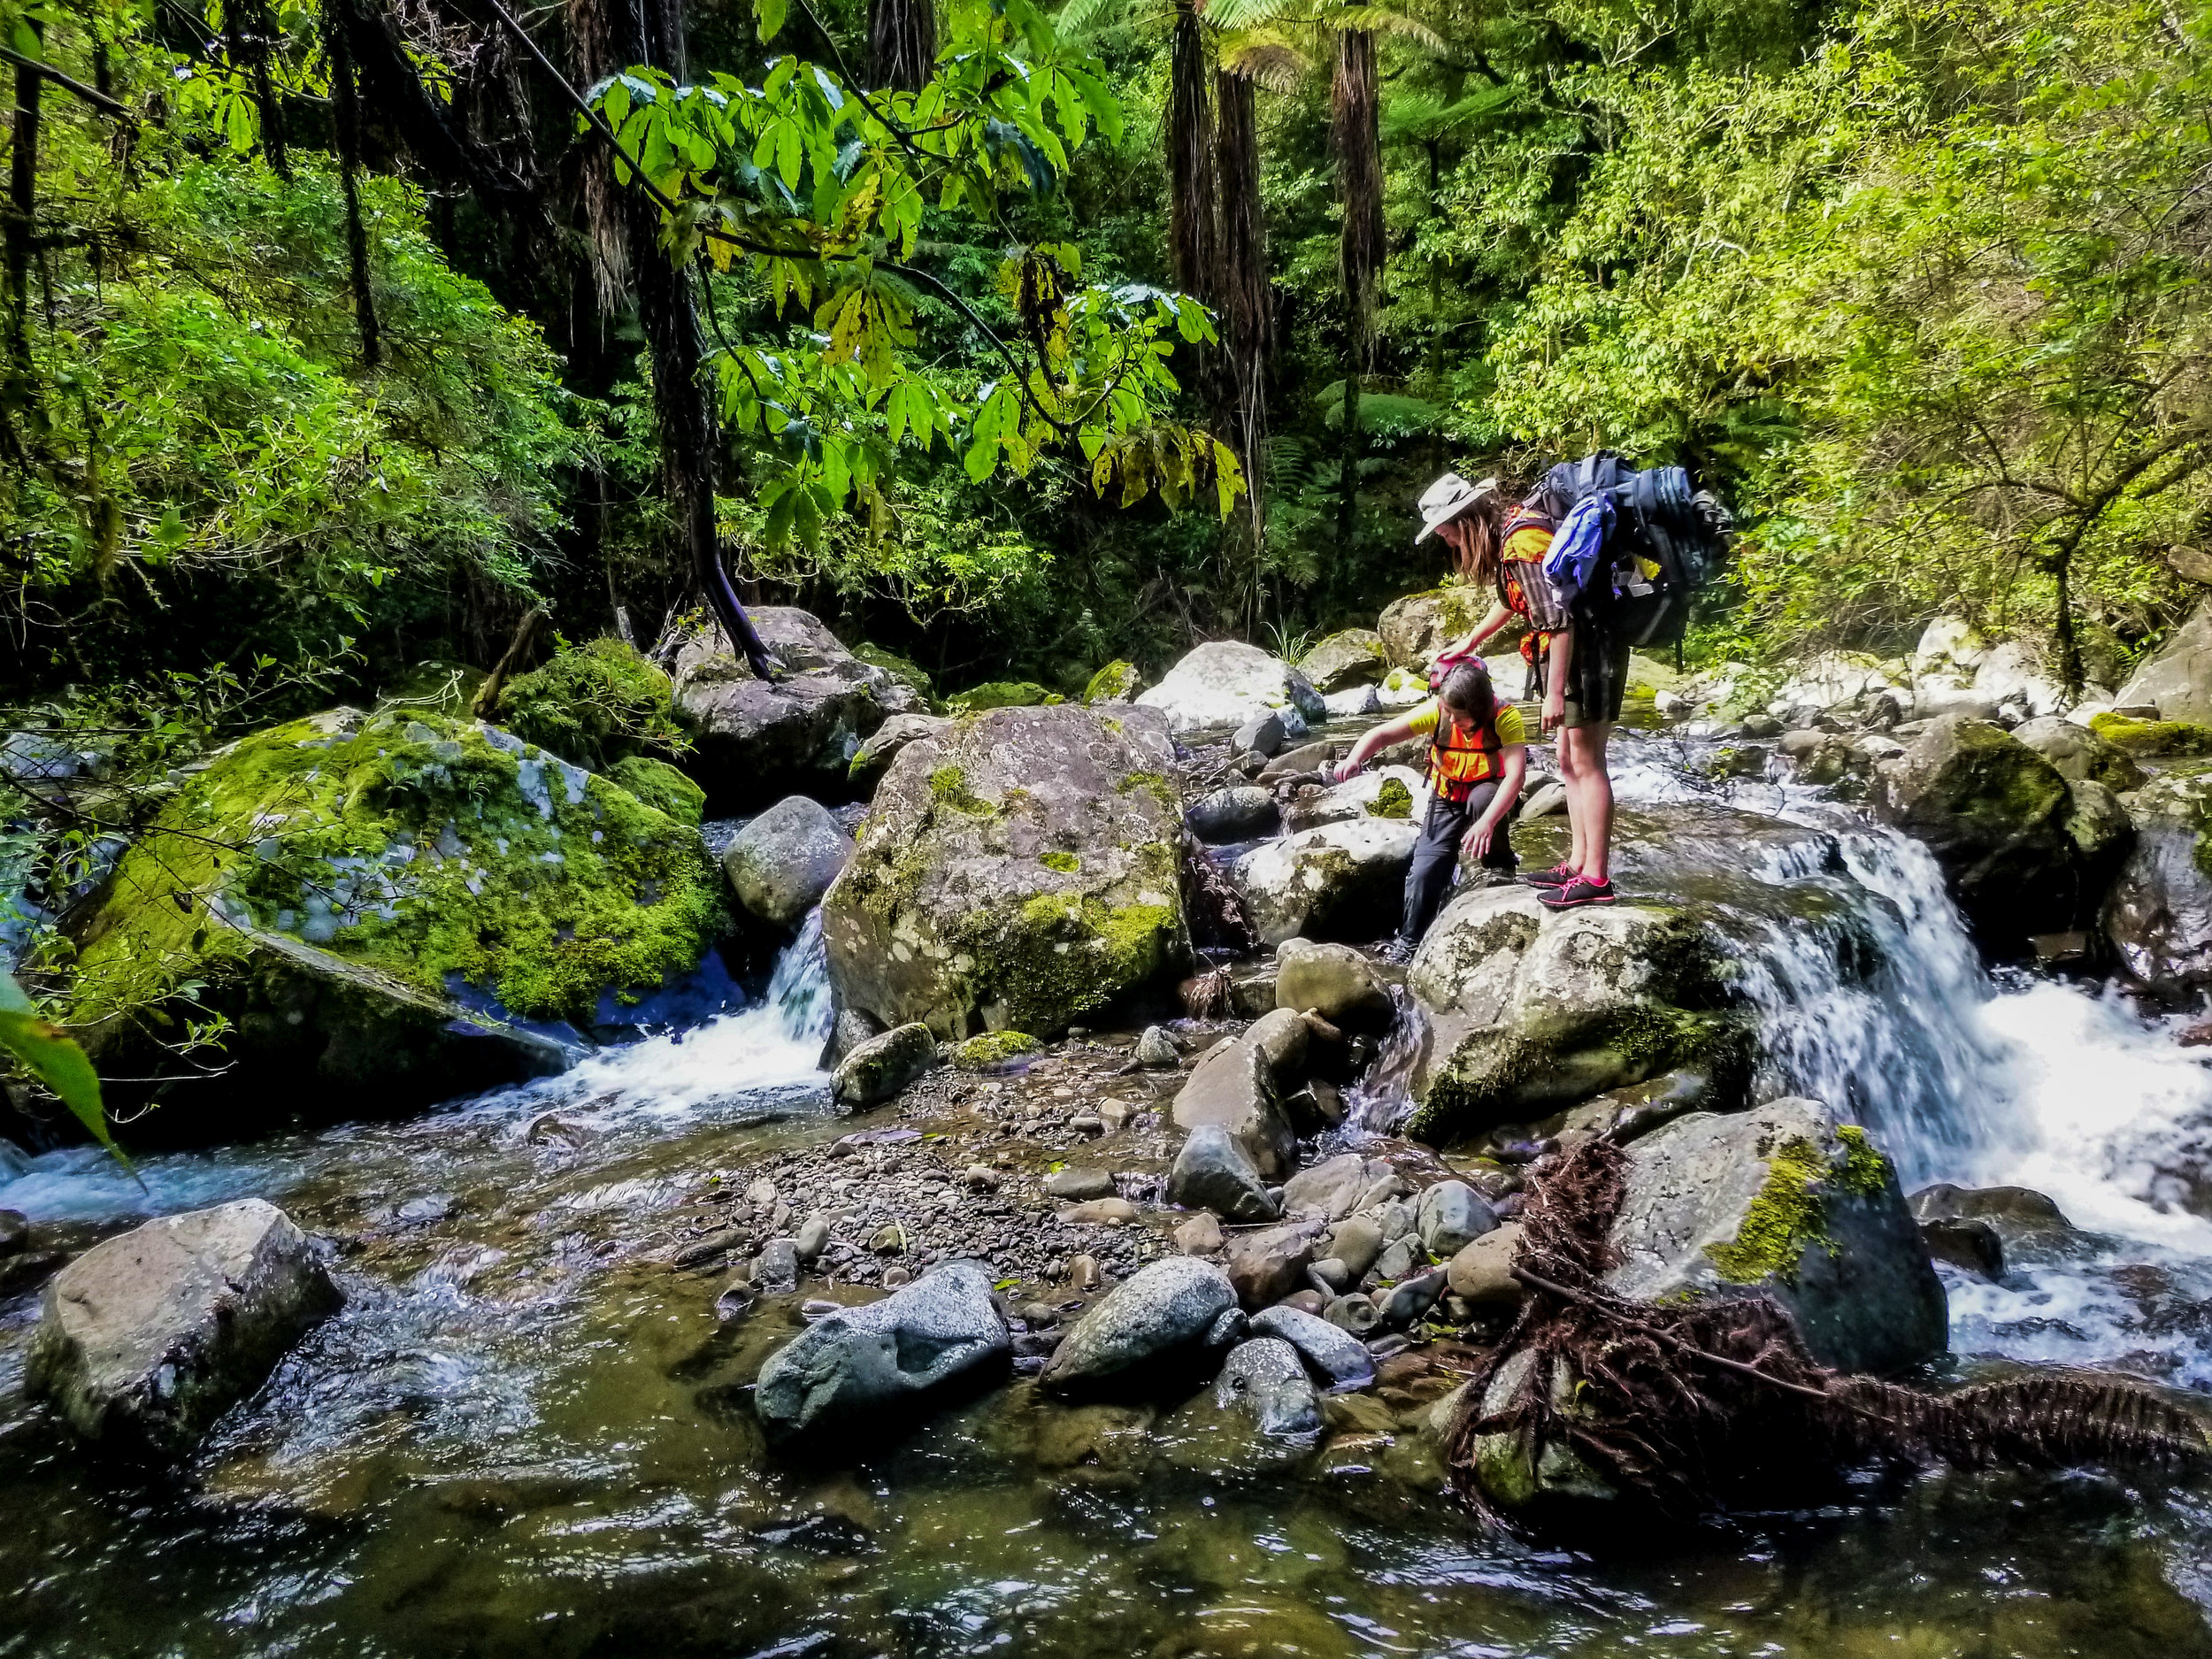 Waioeka Two Day Hiking Expedition   Take a two day hiking expedition into the wildnerness of the Eastern Bay of Plenty, through the rugged Waioeka Gorge near Opotiki.   Read More